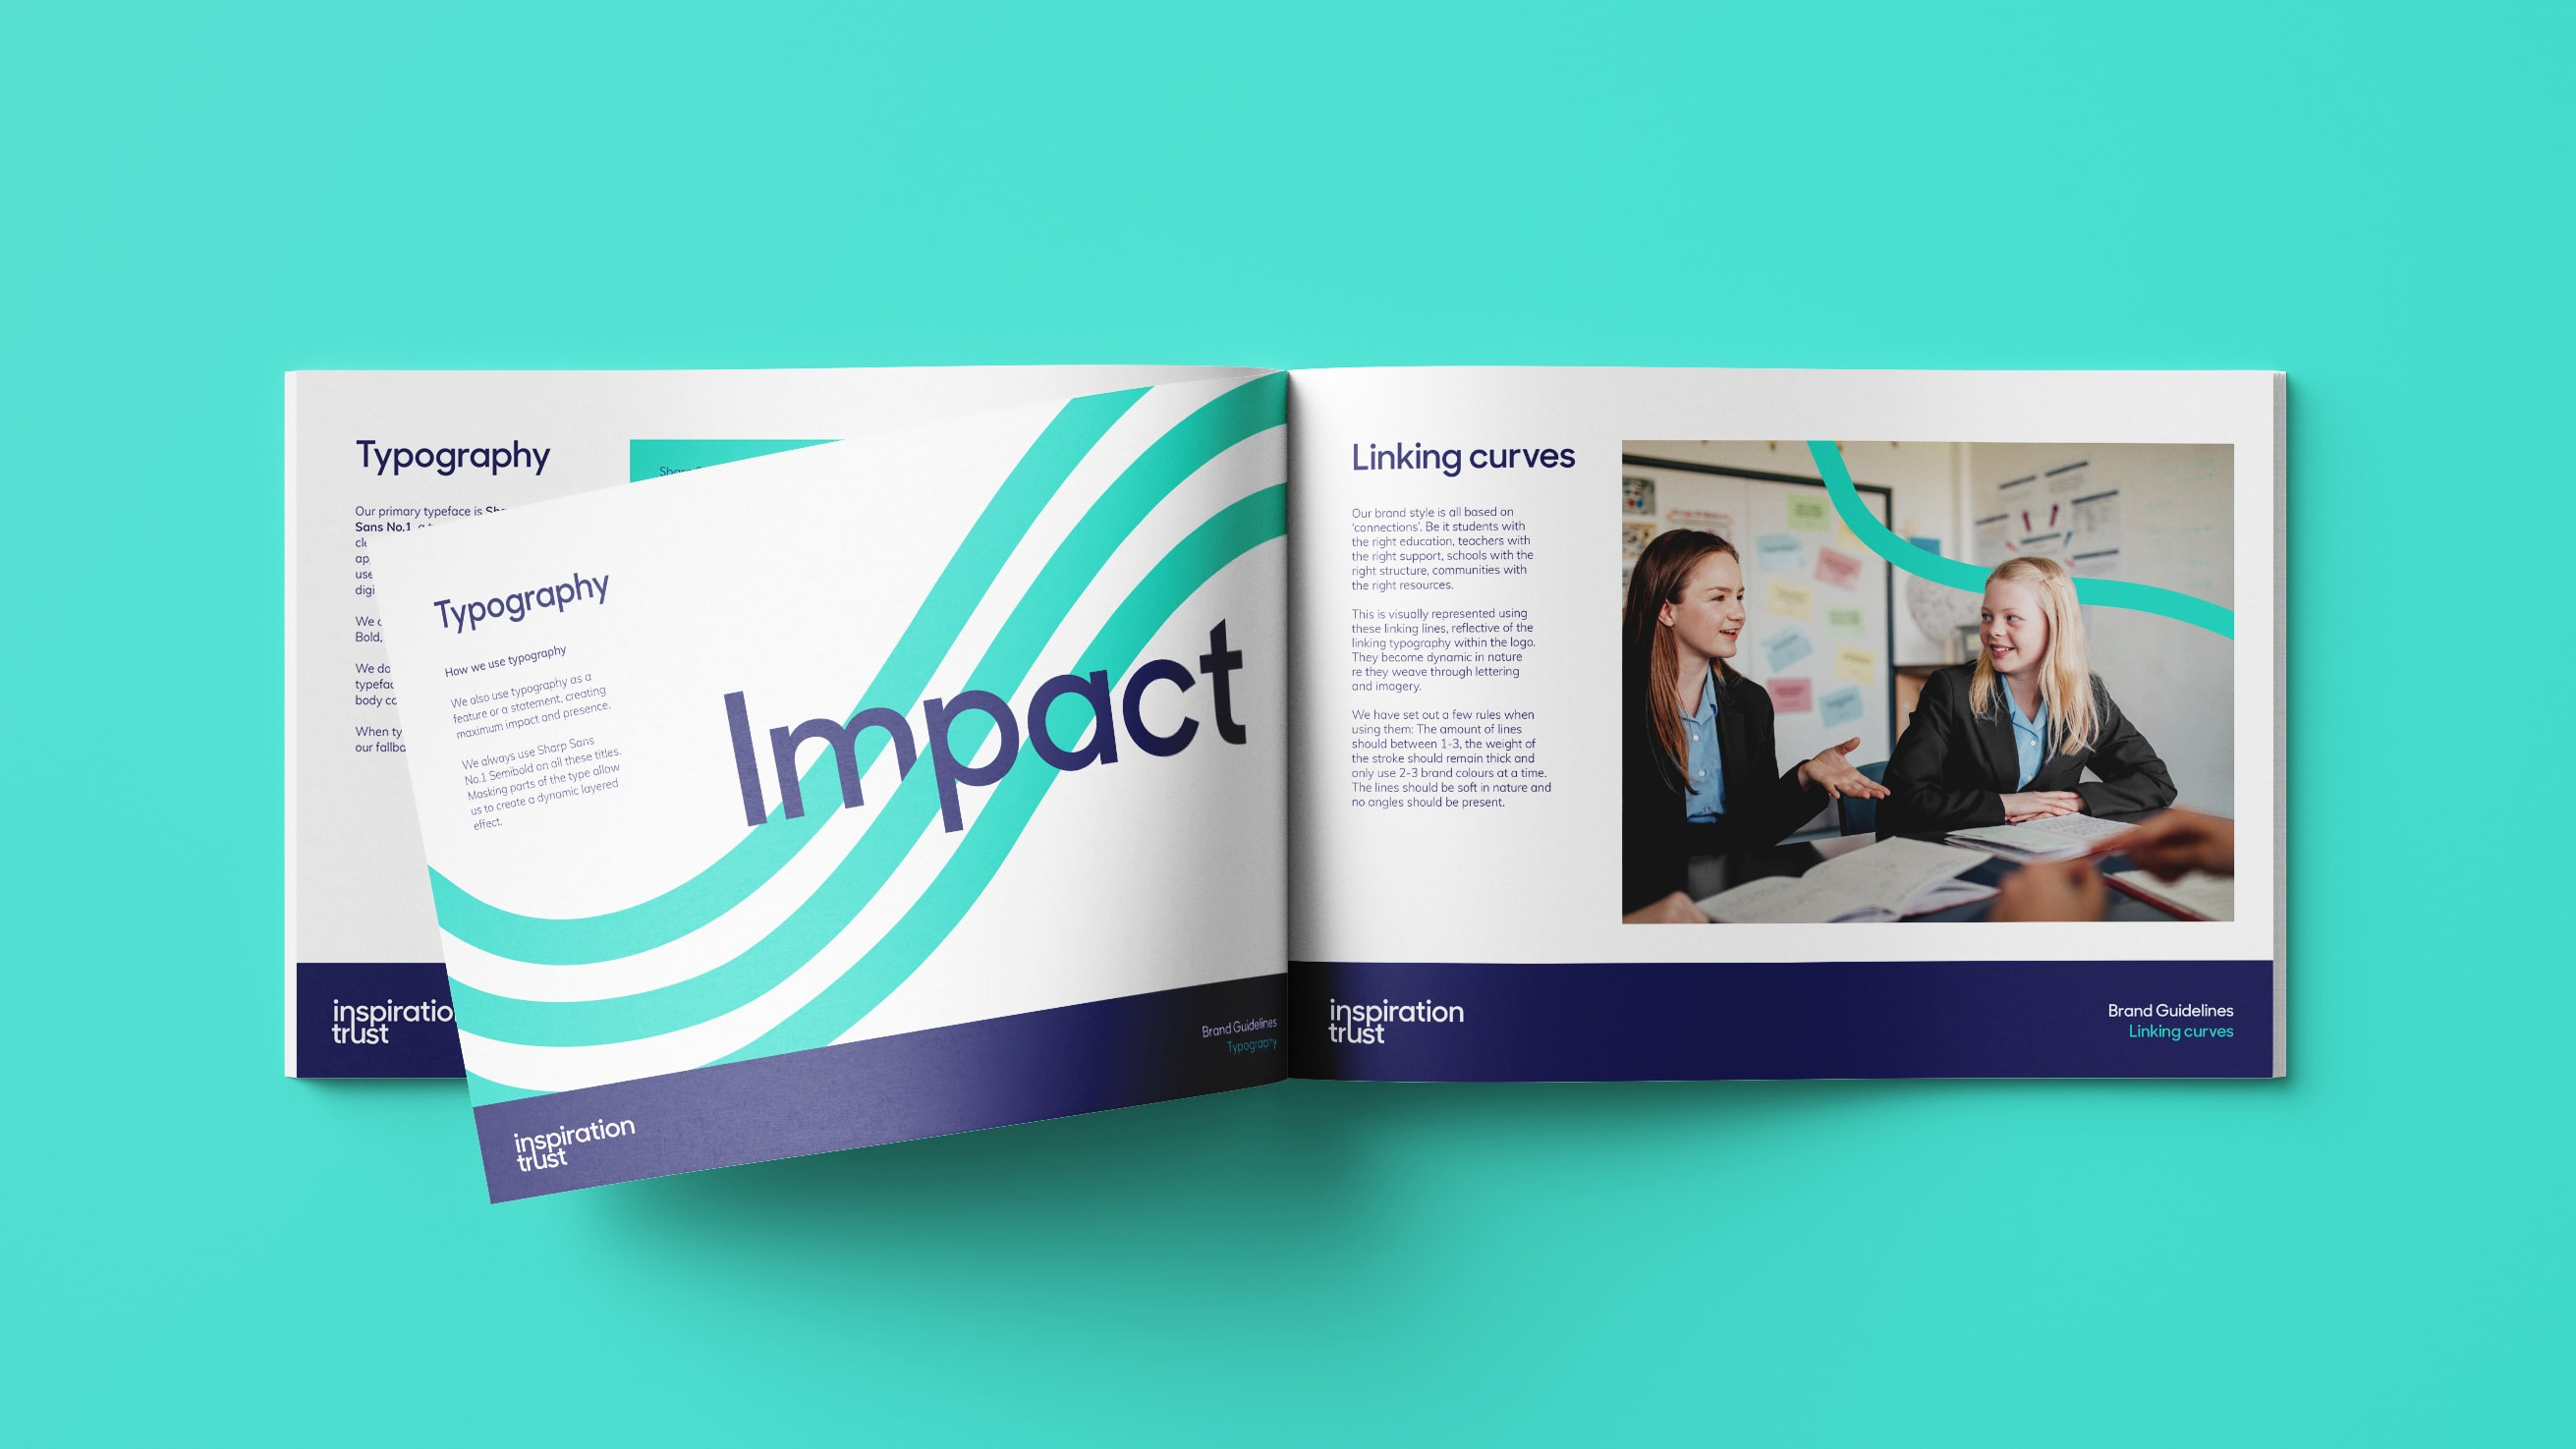 Inspiration Trust brand guidelines showing typography and graphic style